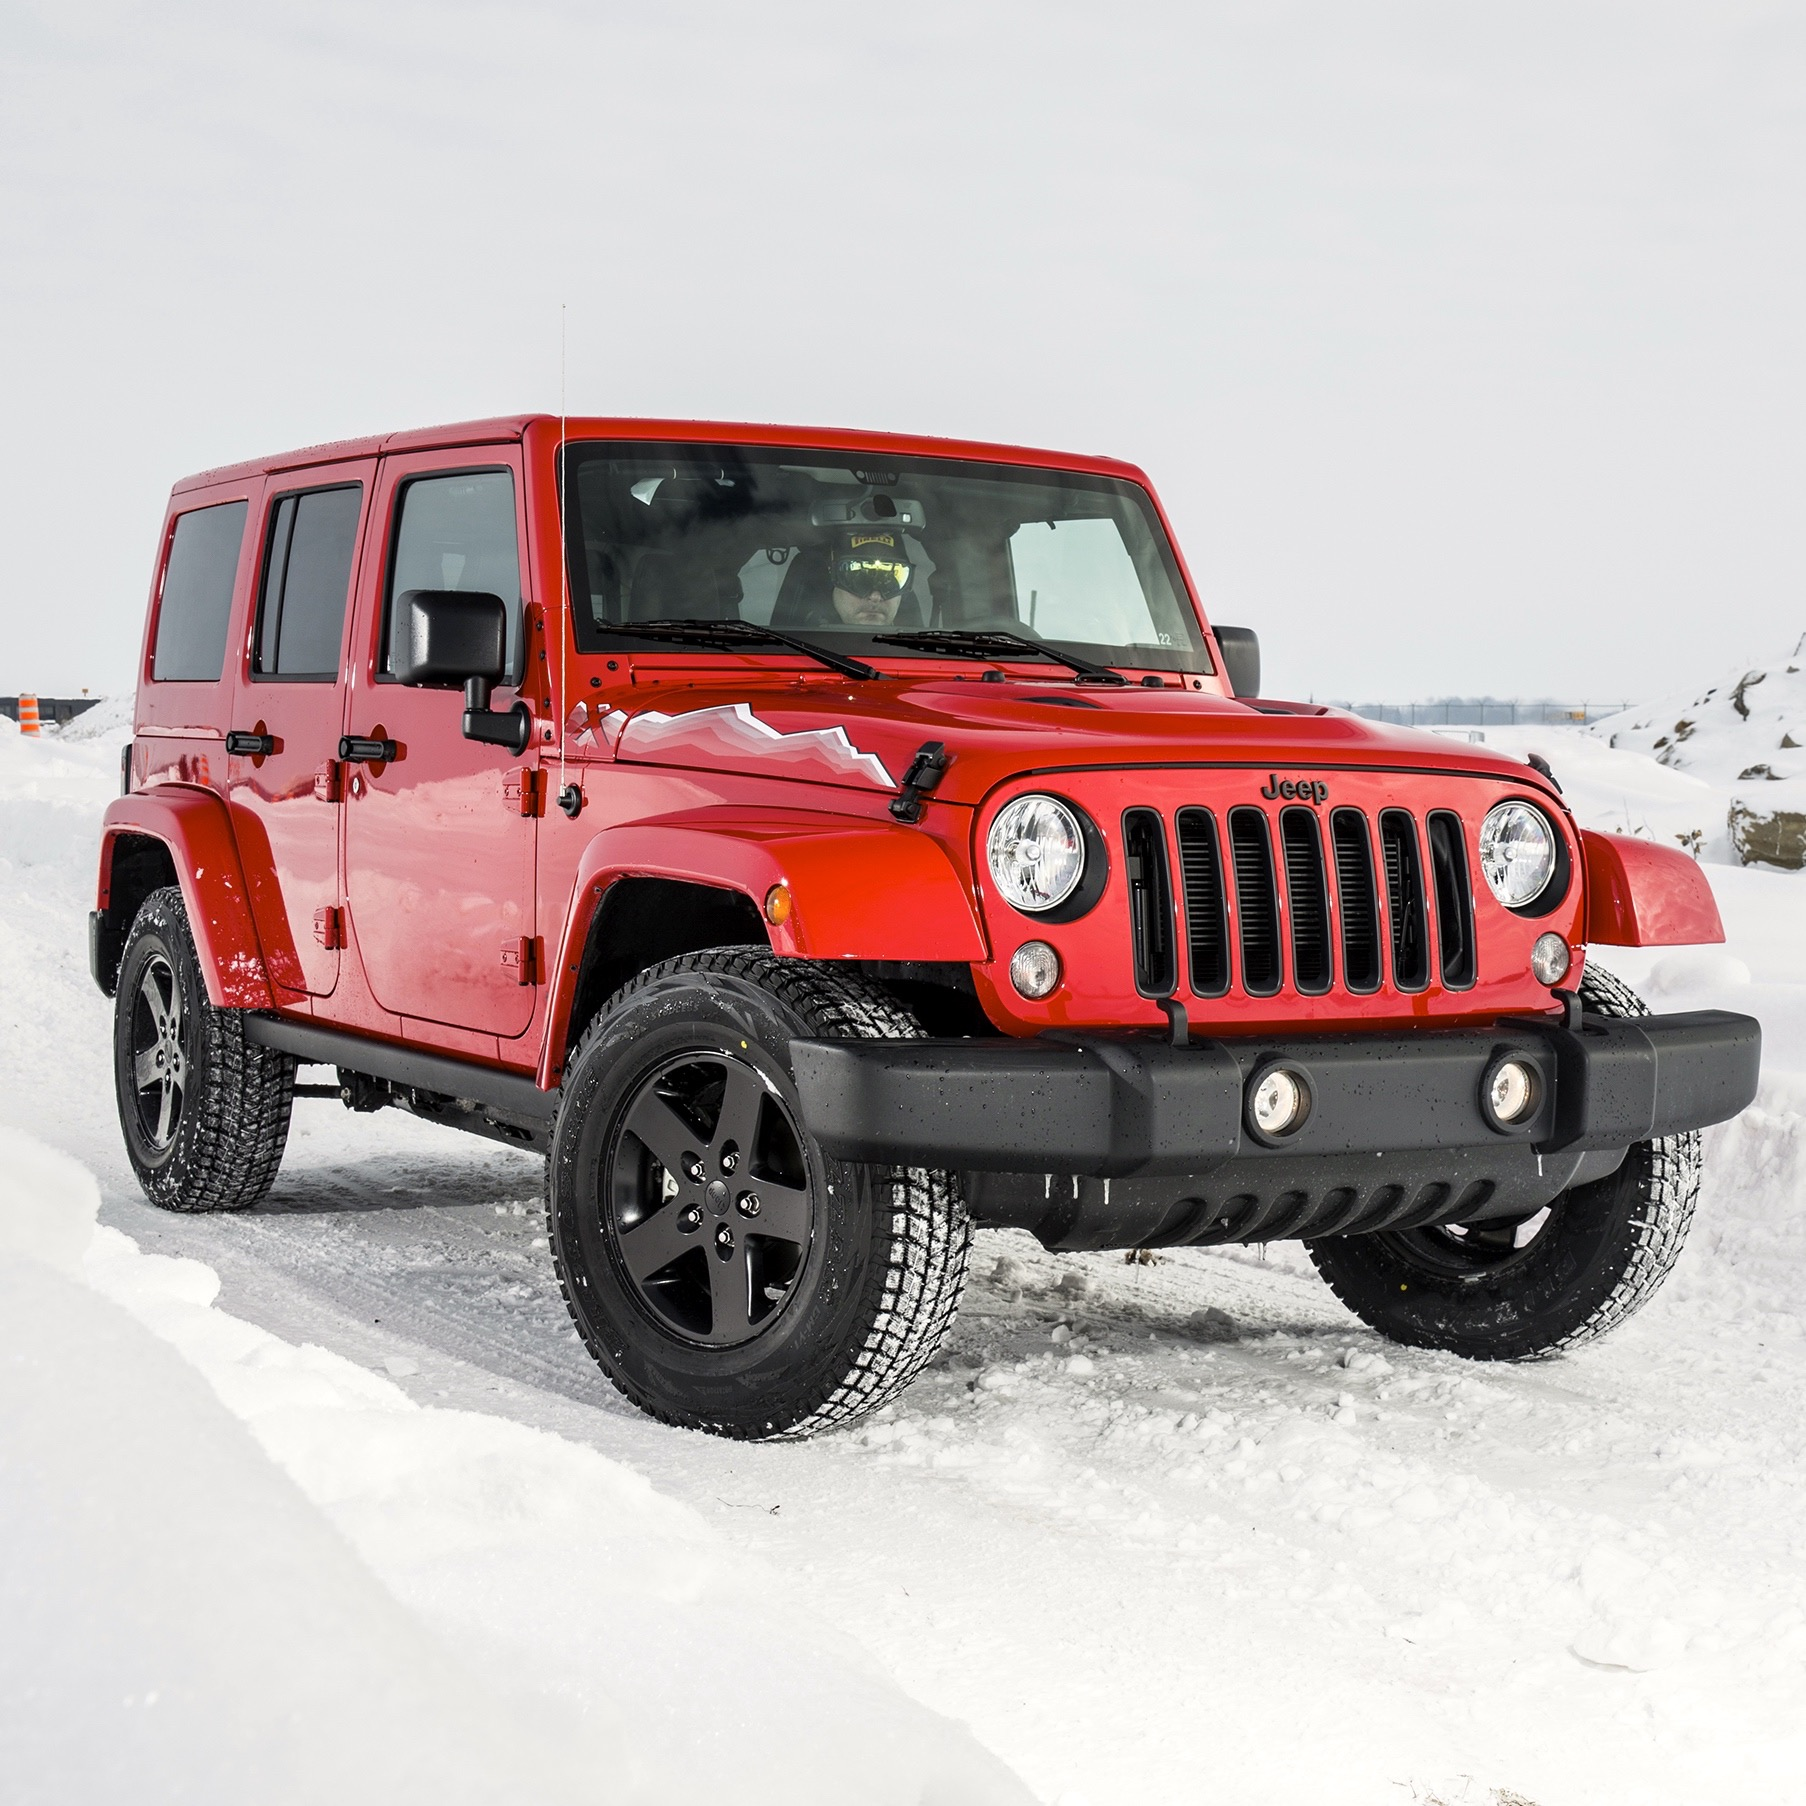 Badass Jeep Wrangler >> Off-Road in the Snow with Jeep